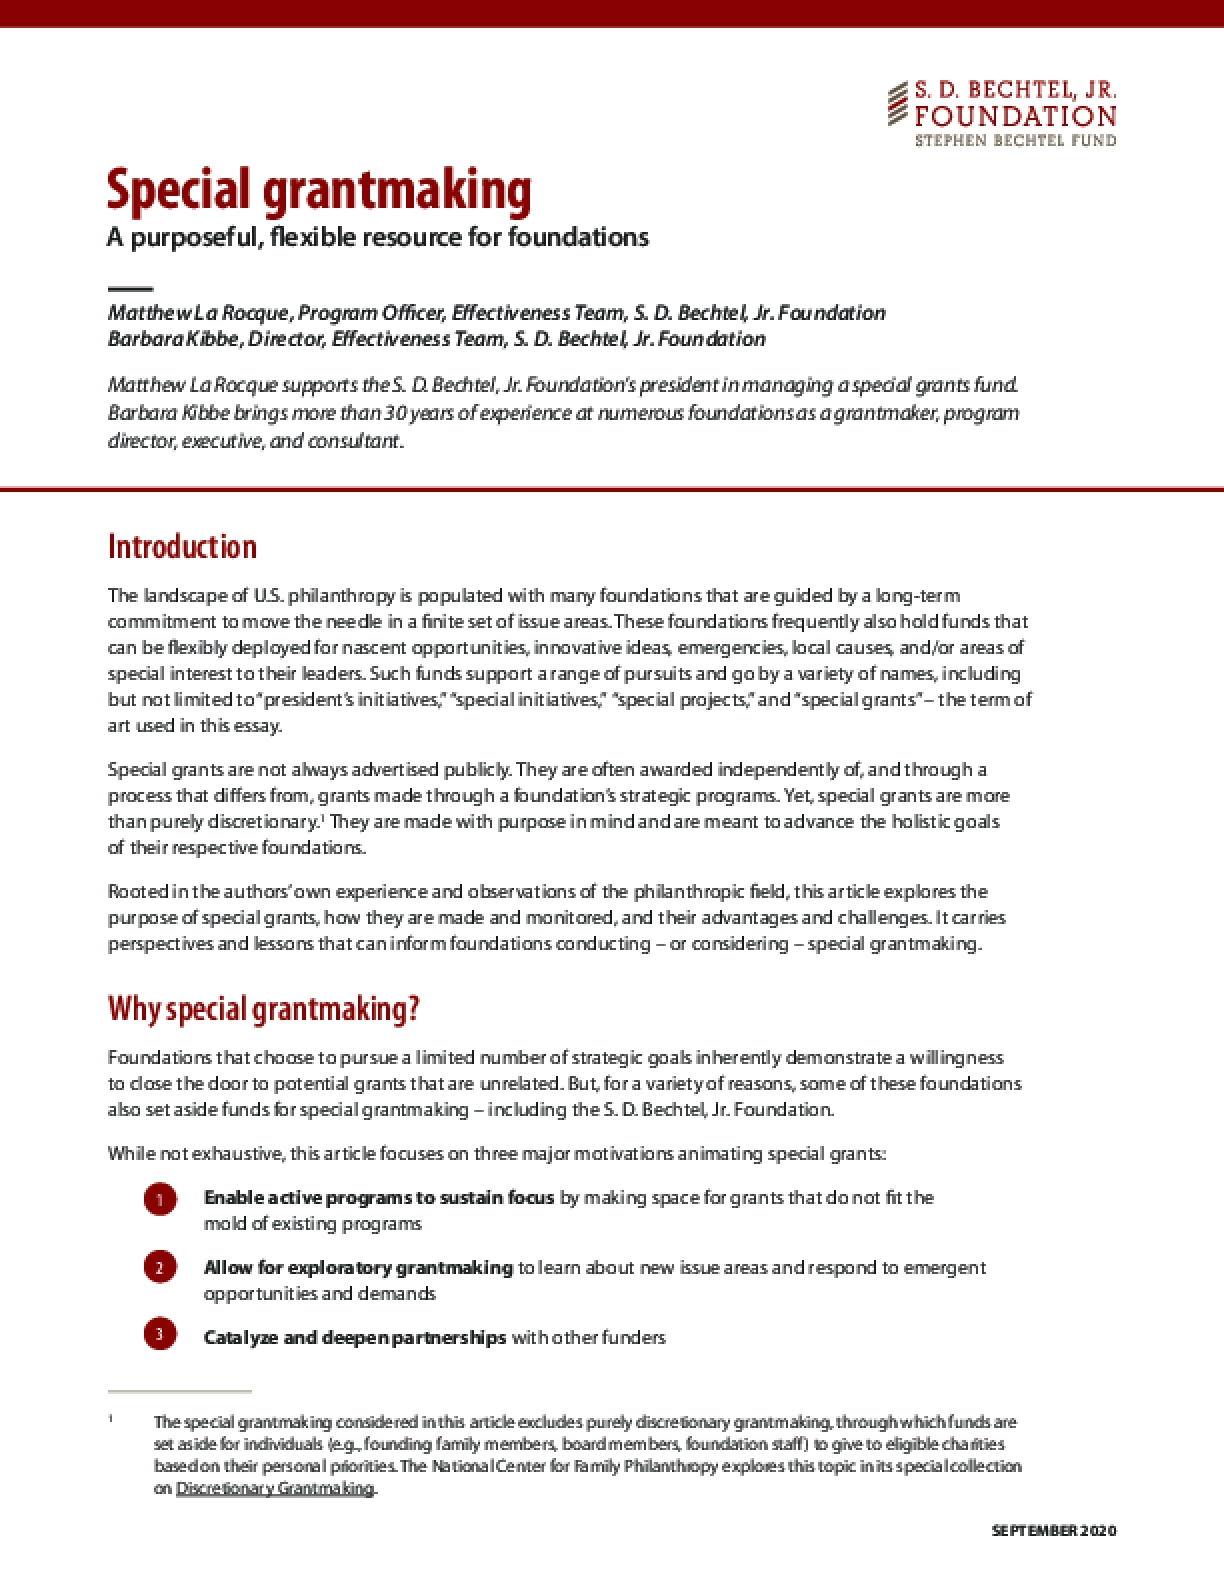 Special grantmaking: A purposeful, flexible resource for foundations